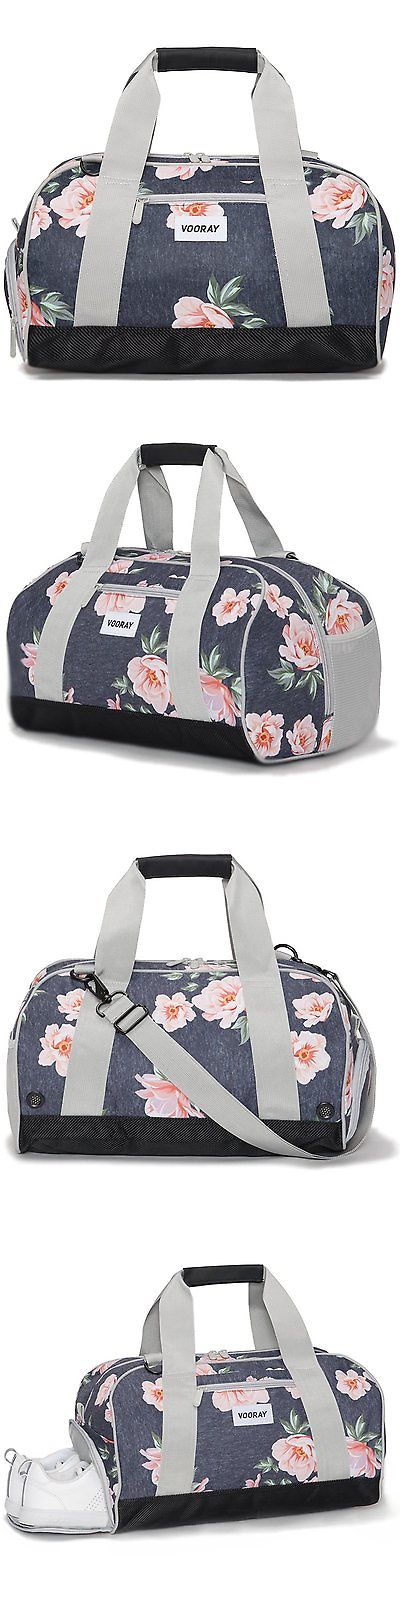 Gym Bags 68816 Vooray Burner 16 Compact Bag With Shoe Pocket Rose Navy